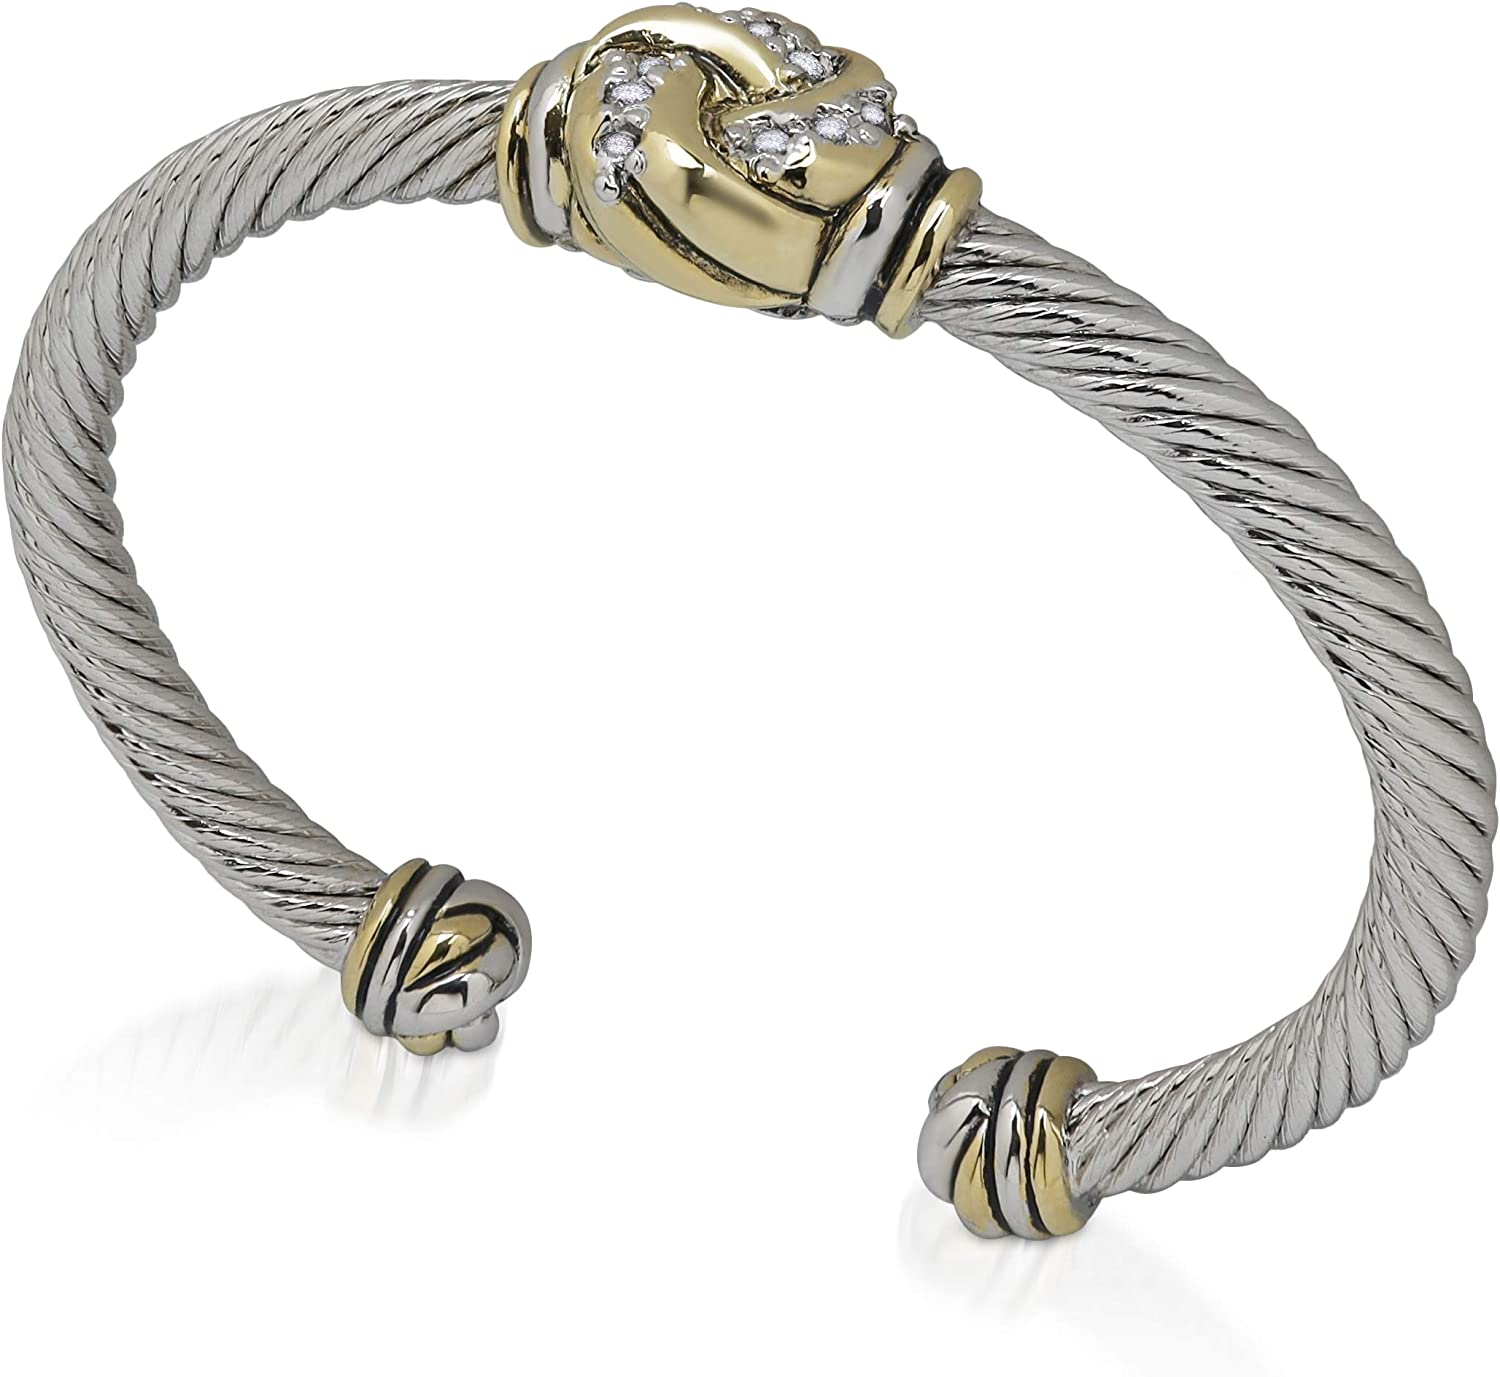 John Medeiros Wire Cuff Bracelet with Knot Style Design wih Clear CZ Stones, Made in America